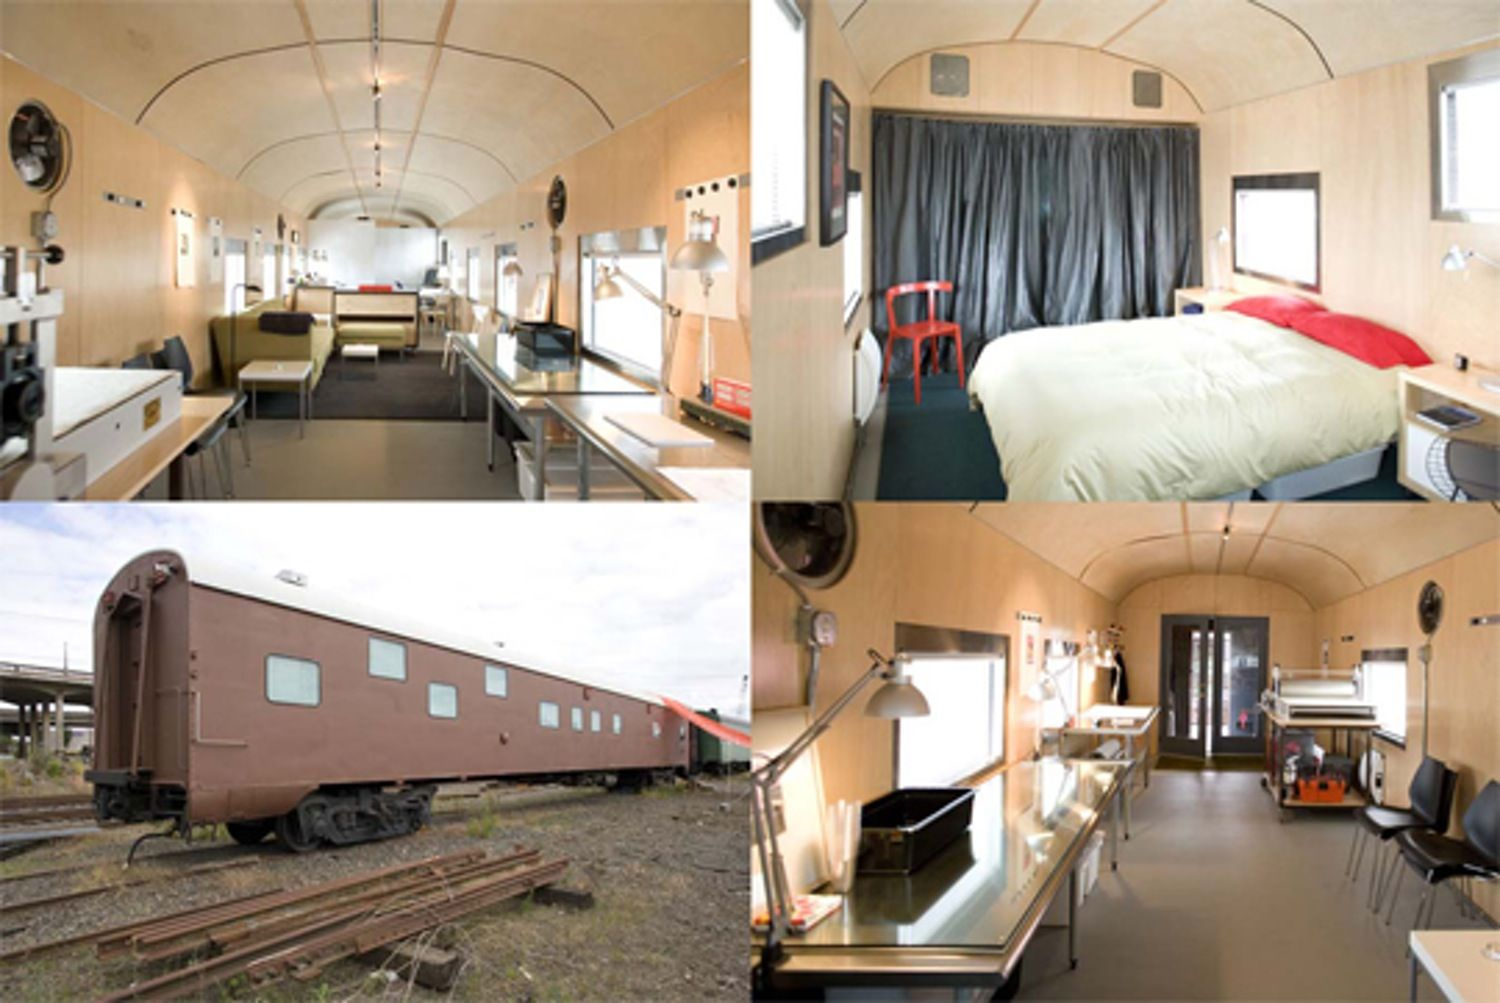 Train Car Home in Portland | Unusual homes, Tiny house ... on cardboard box home designs, container home designs, carriage home designs, train car home designs, rail car dock designs,